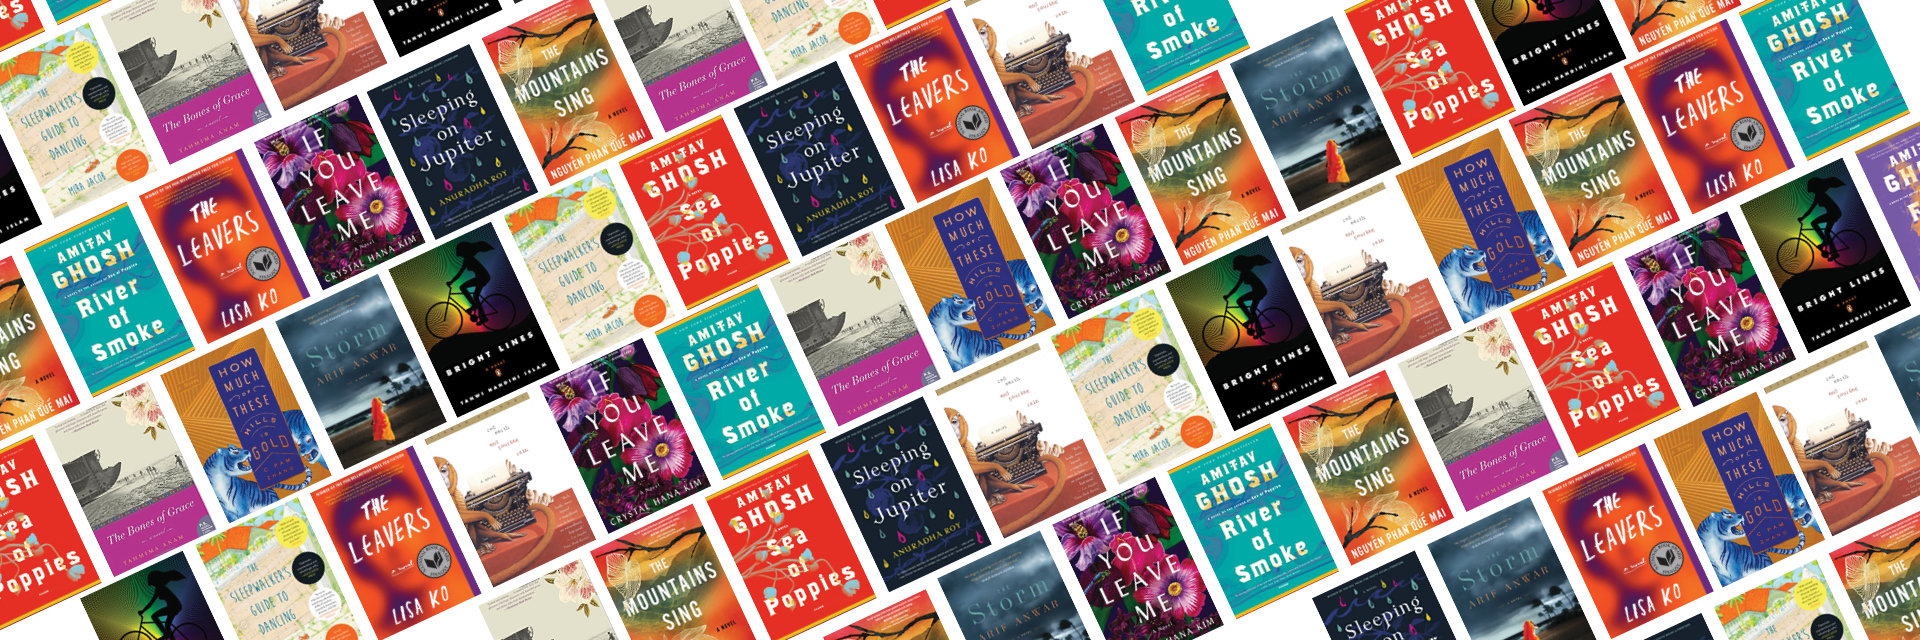 Asian American Writers Workshop APA Heritage Month reading list - book covers